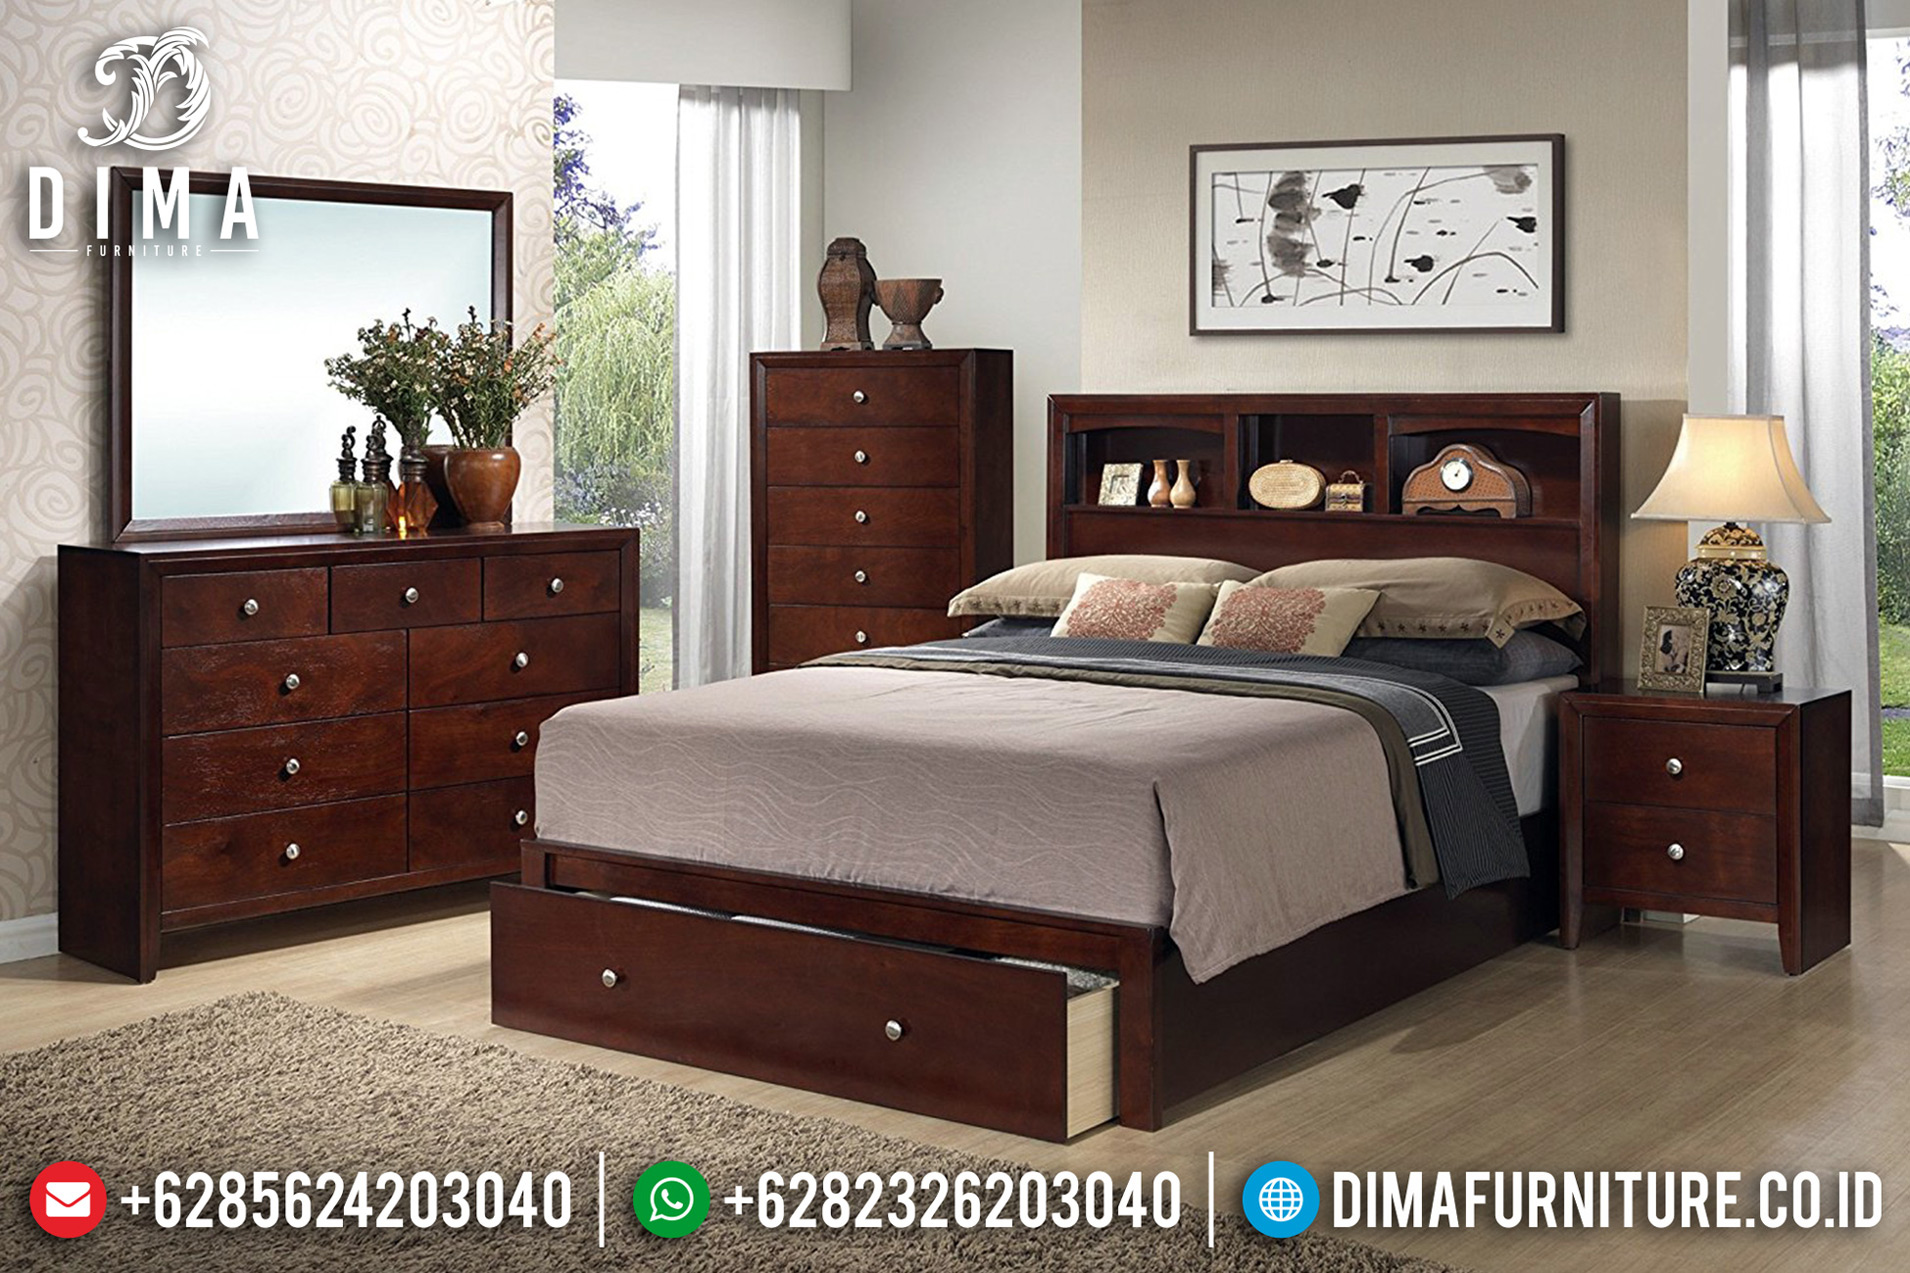 Kamar Set Klasik Jati Naturarl Model Laci New Desain Luxury Classic BT-0672